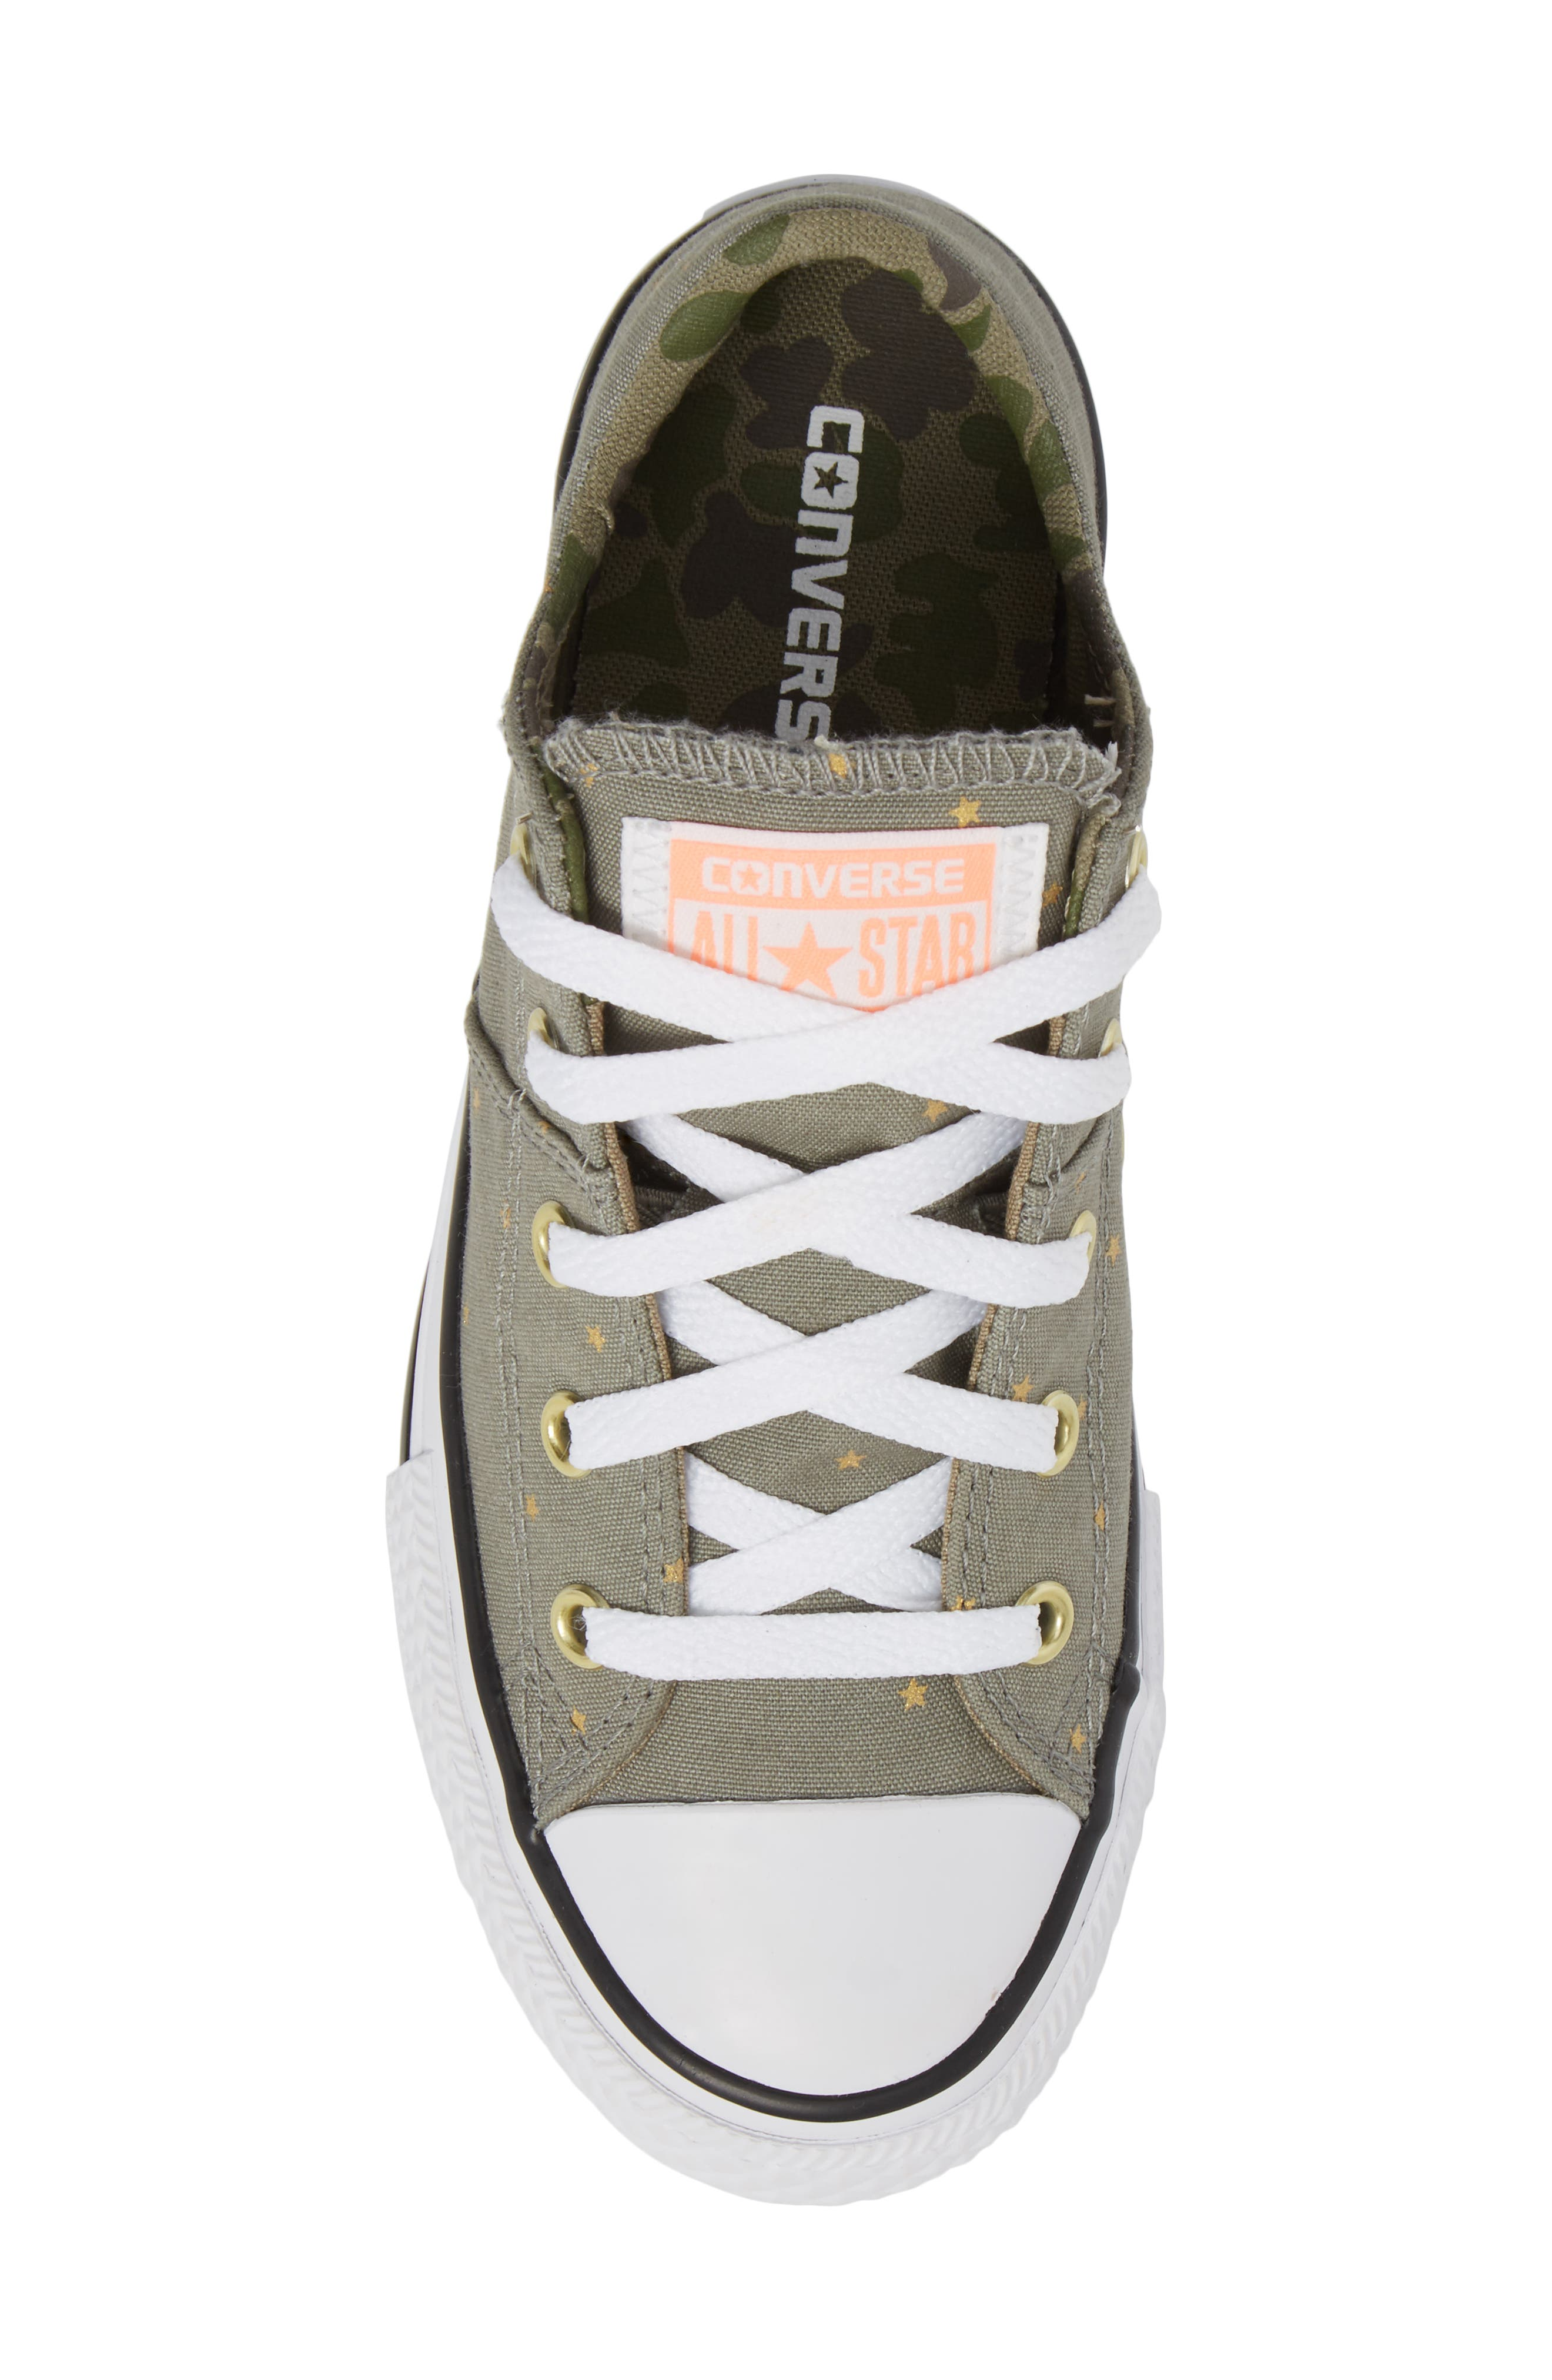 All Star<sup>®</sup> Madison Patterned Low Top Sneaker,                             Alternate thumbnail 5, color,                             022